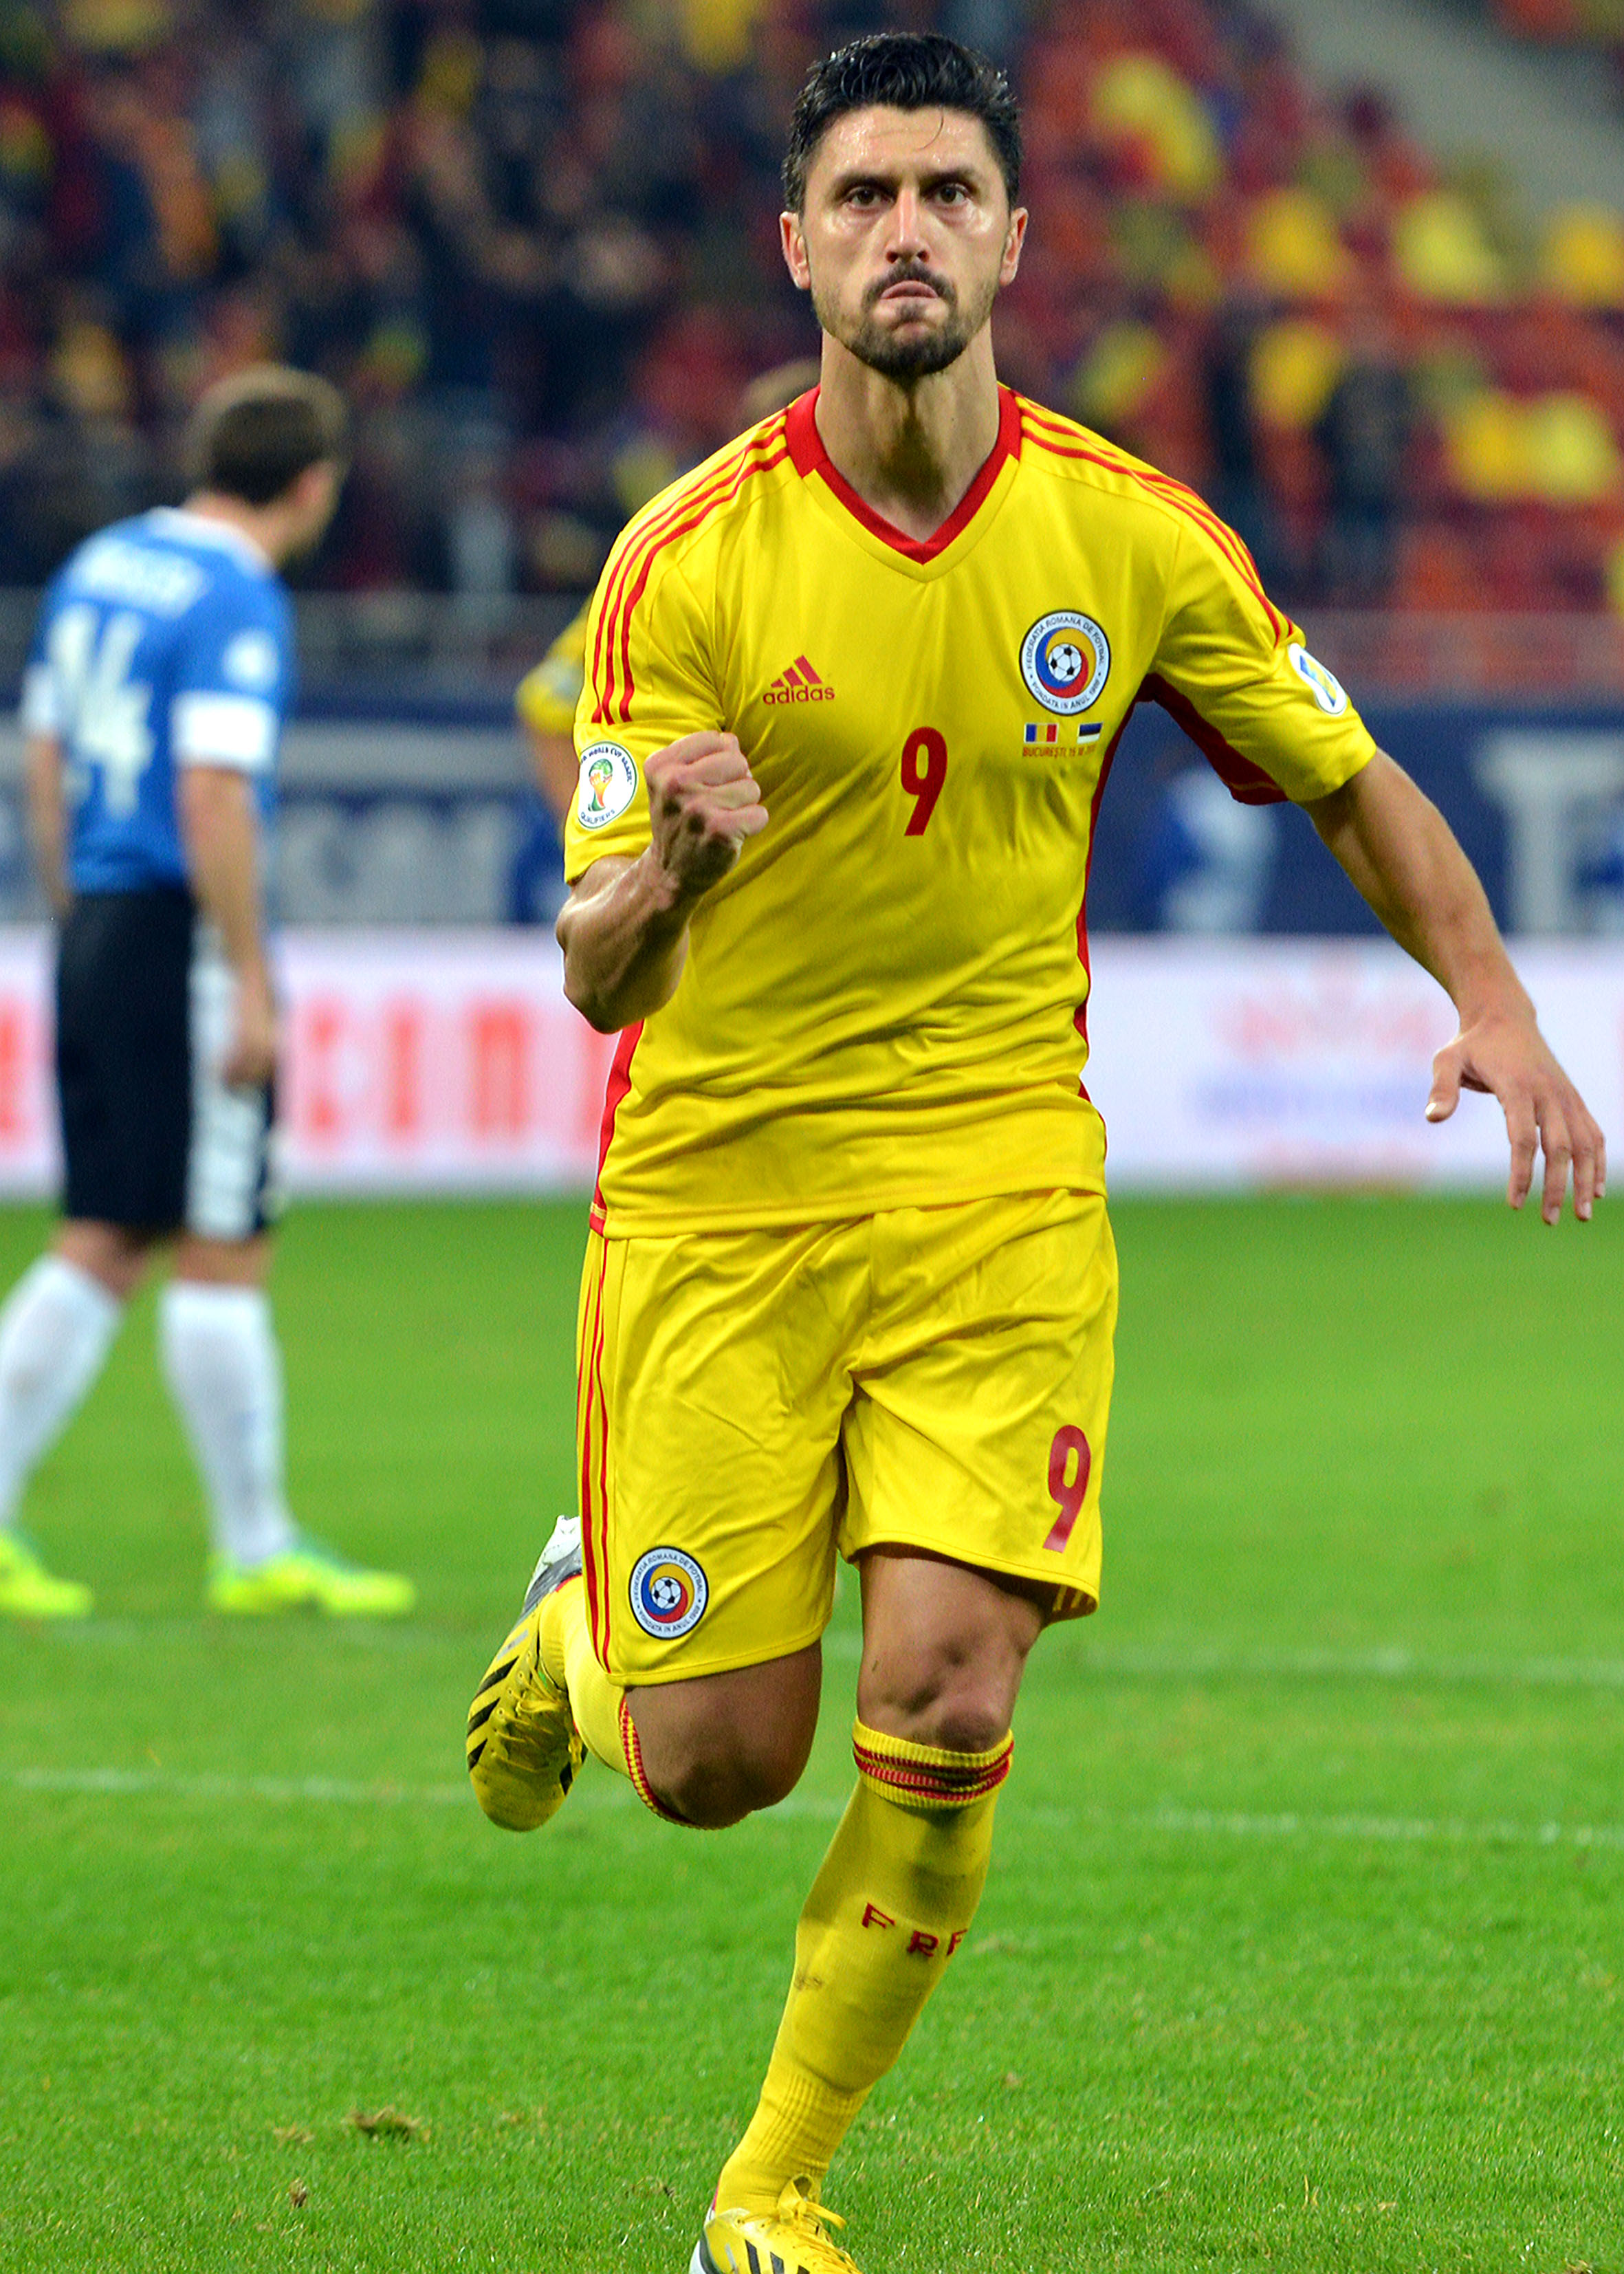 Romania-12-13-adidas-home-kit-yellow-yellow-yellow.jpg